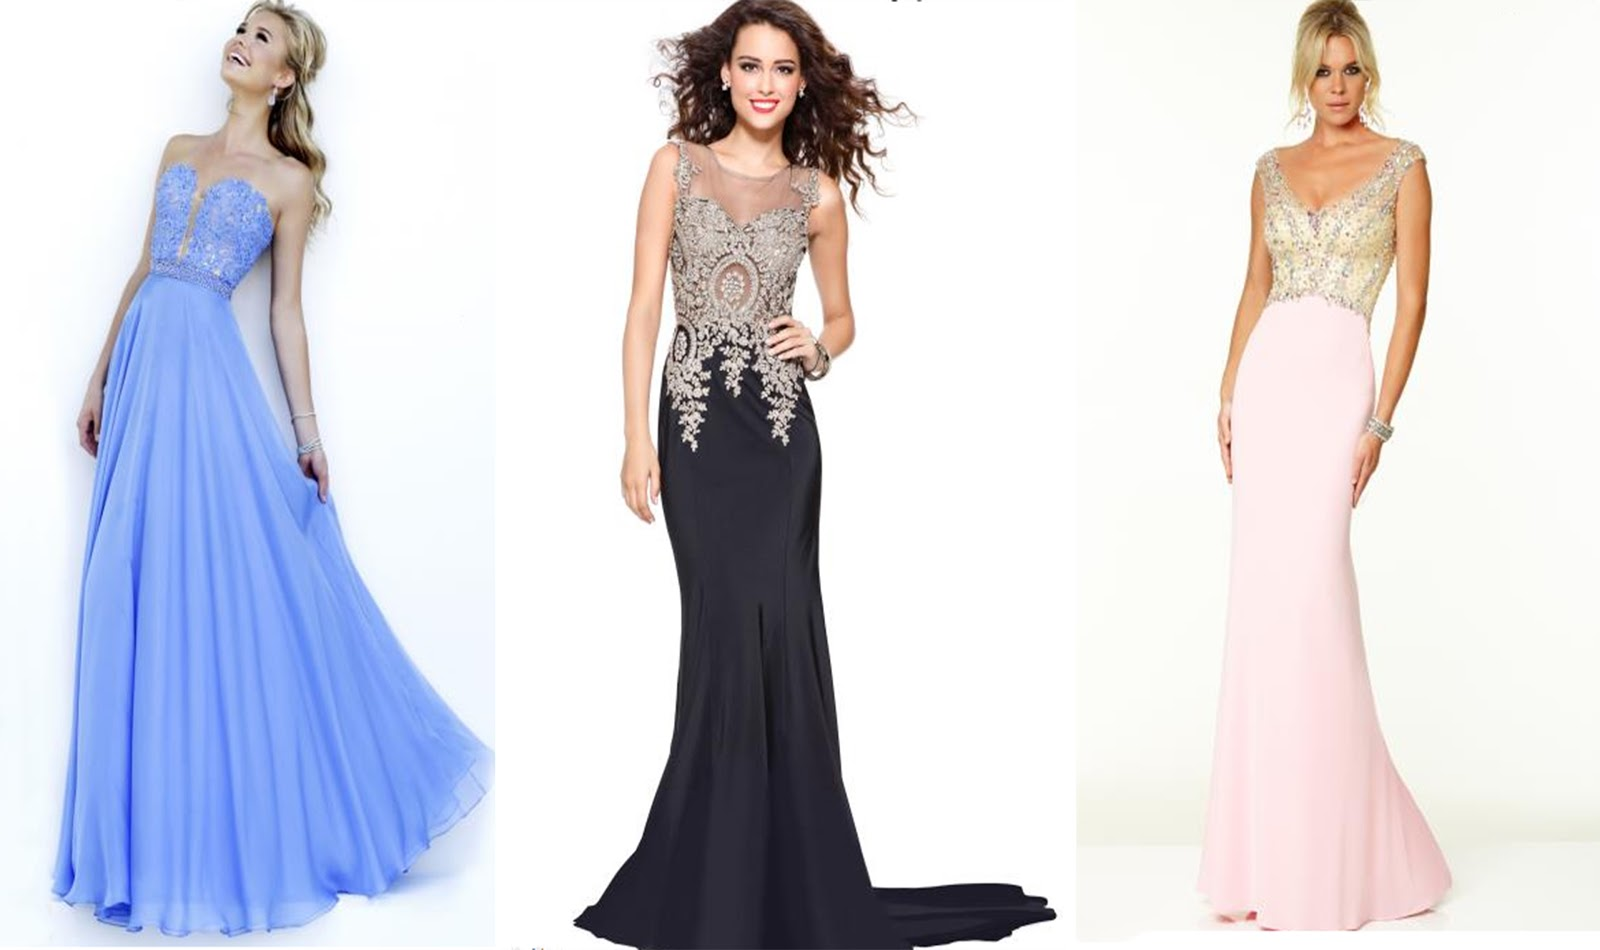 How to find the prom dress of your dreams - eager4fashion